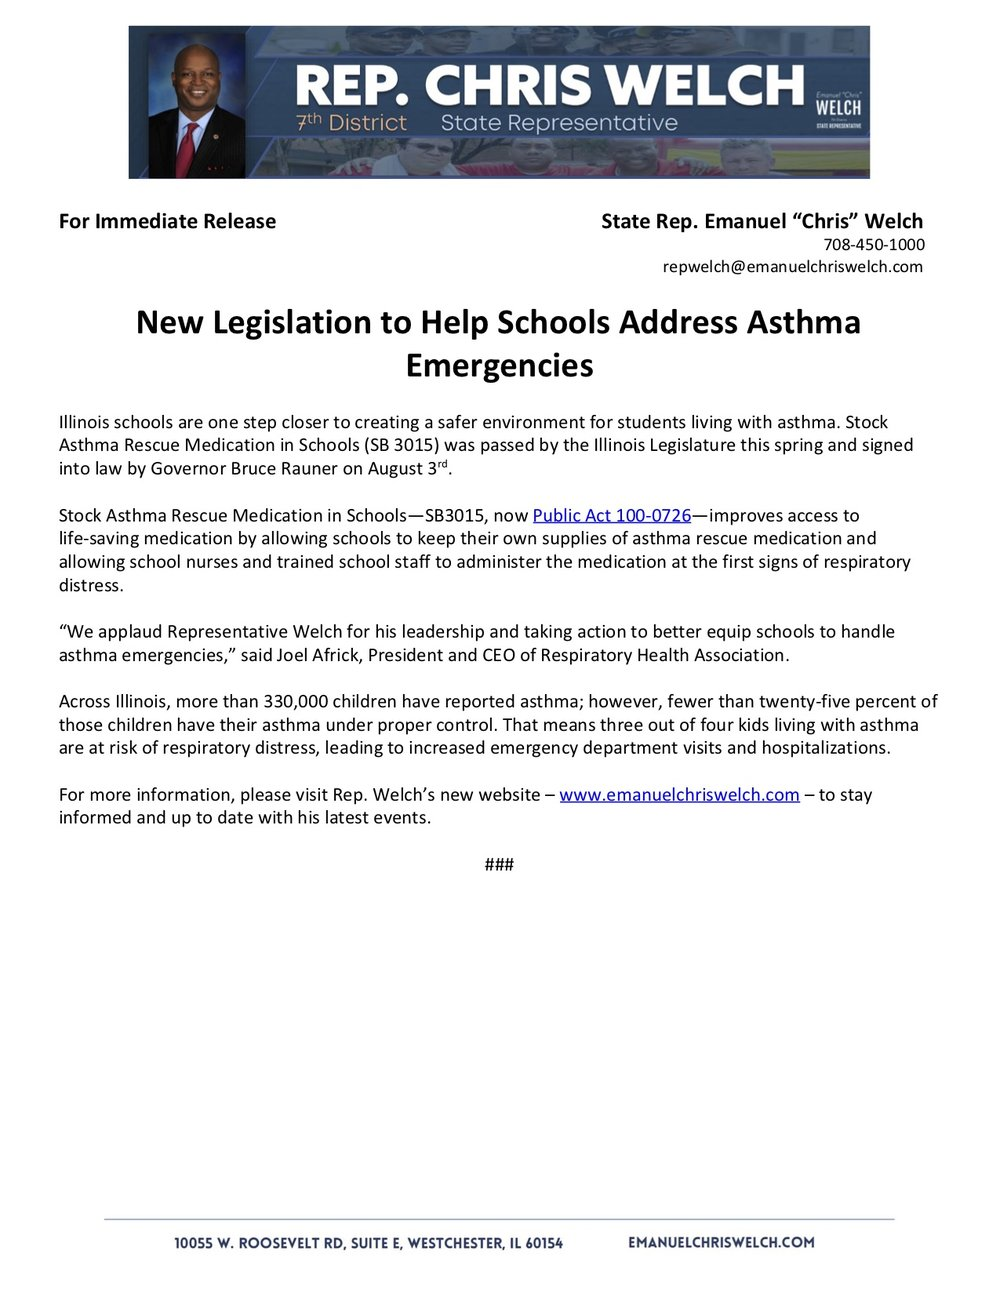 New Legislation to Help Schools Address Asthma Emergencies  (August 15, 2018)